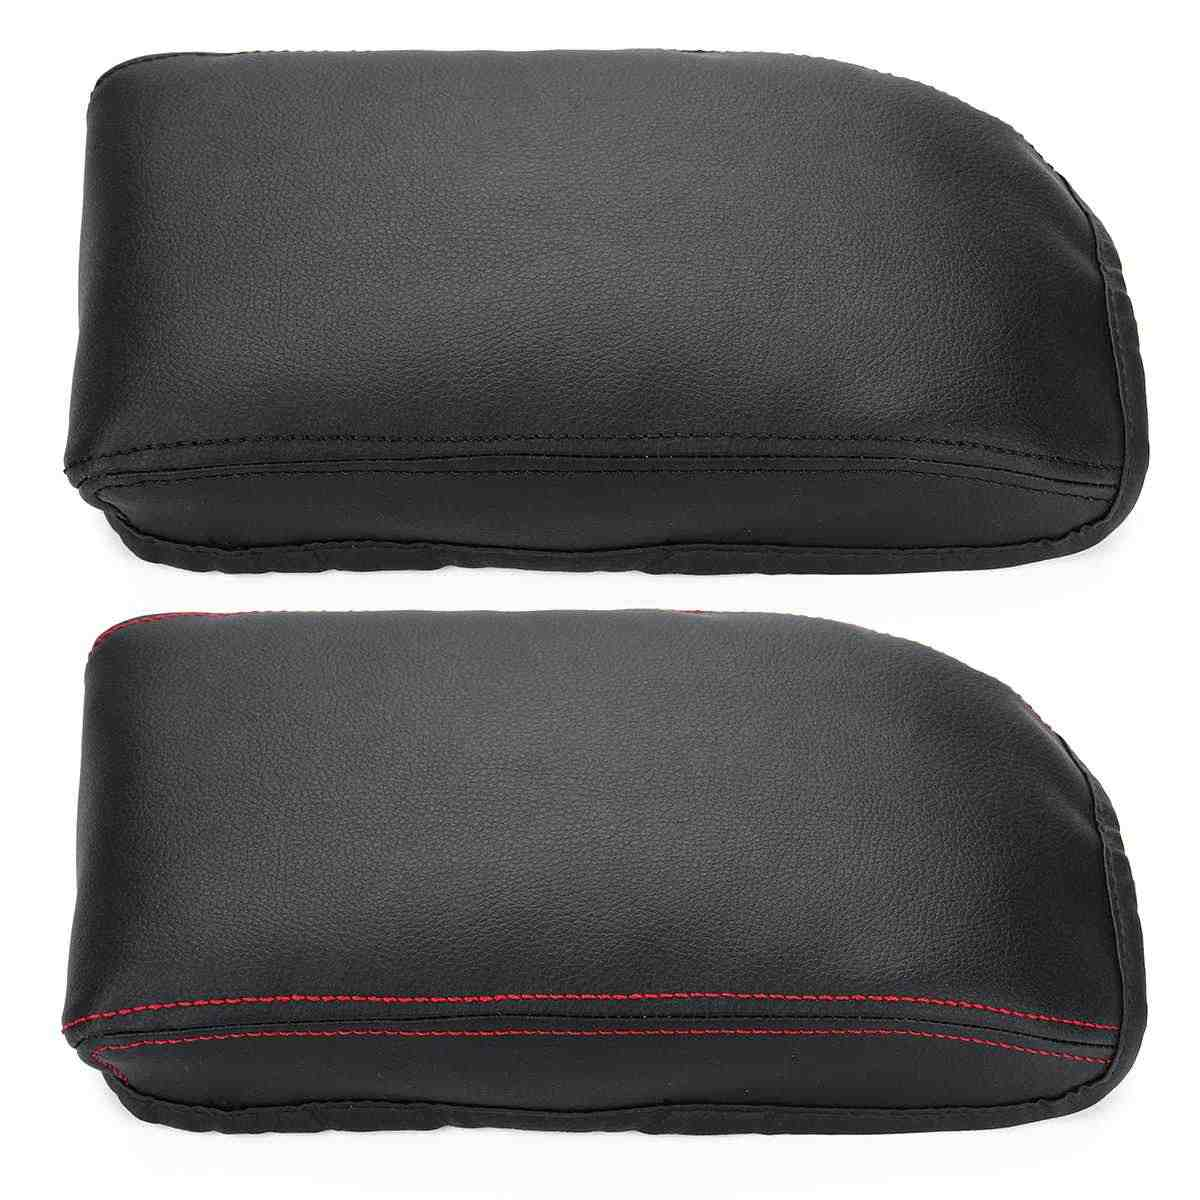 PU Leather Car Center Armrest Arm Rest Box Case Cover Cushion Pad For Skoda Octavia A7 2015 2016 2017 2018